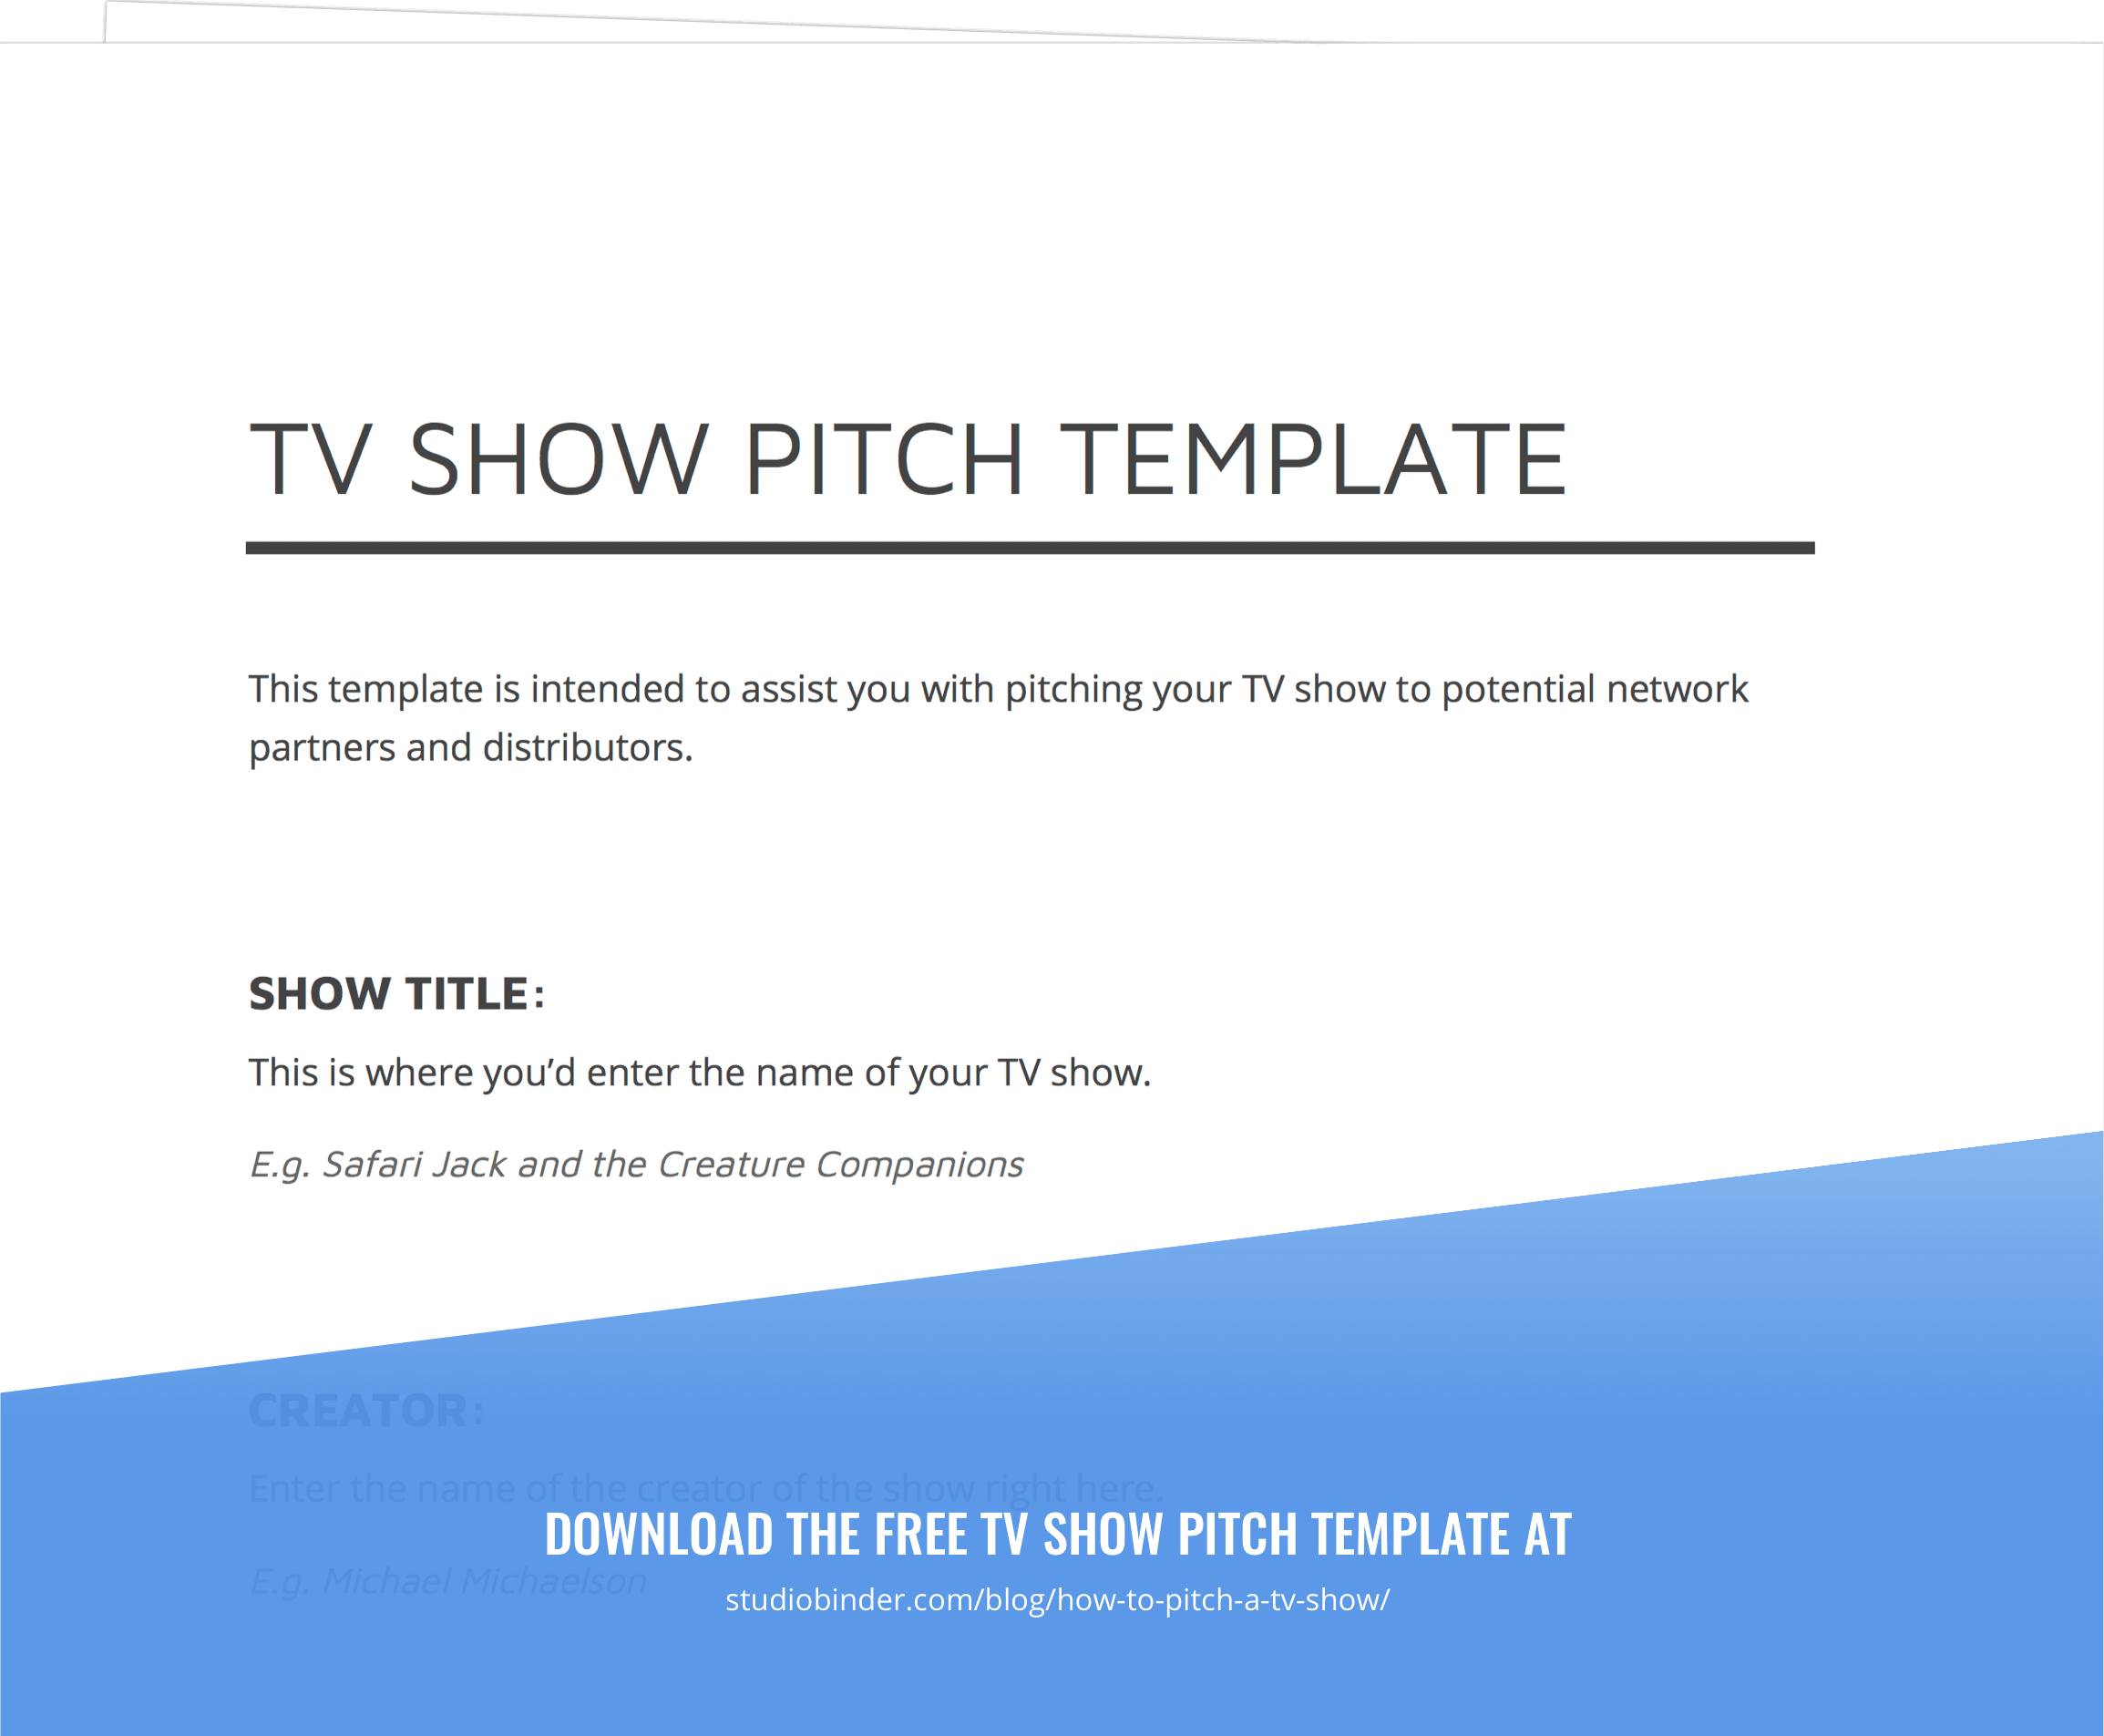 TV Show Pitch Template - Exit Intent - StudioBinder